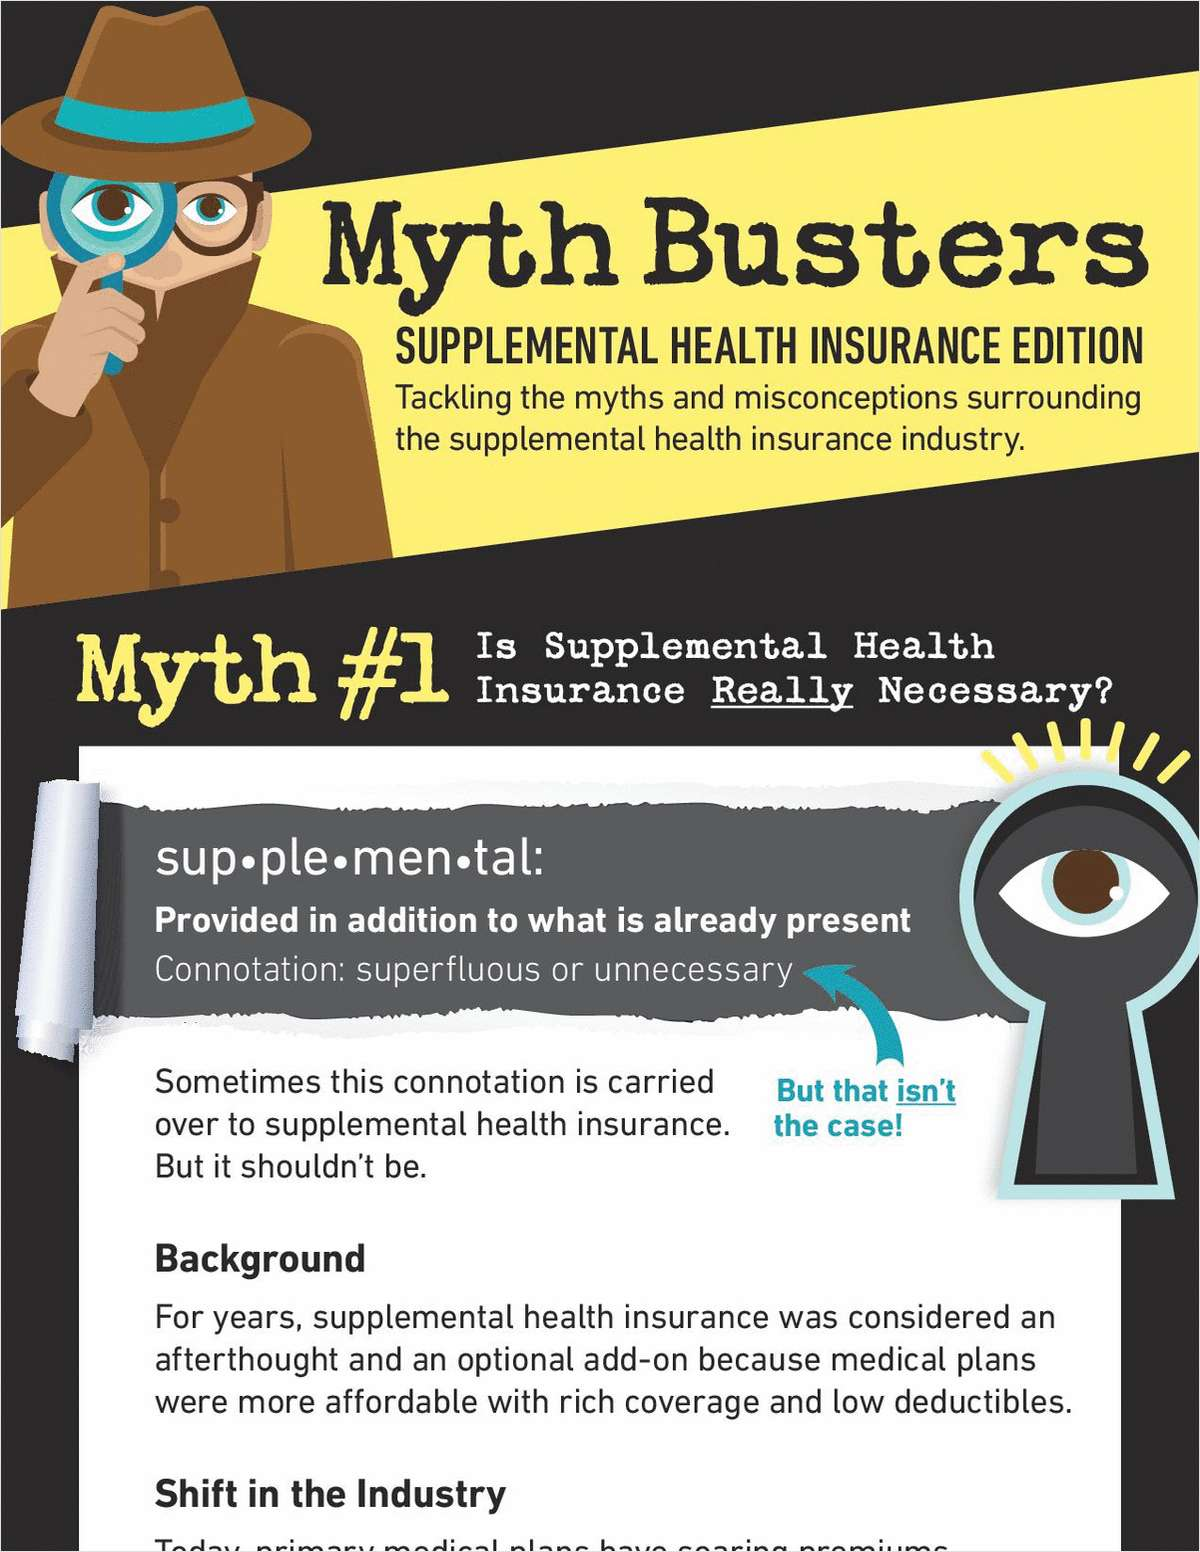 Myth Busters: Supplemental Health Insurance Edition